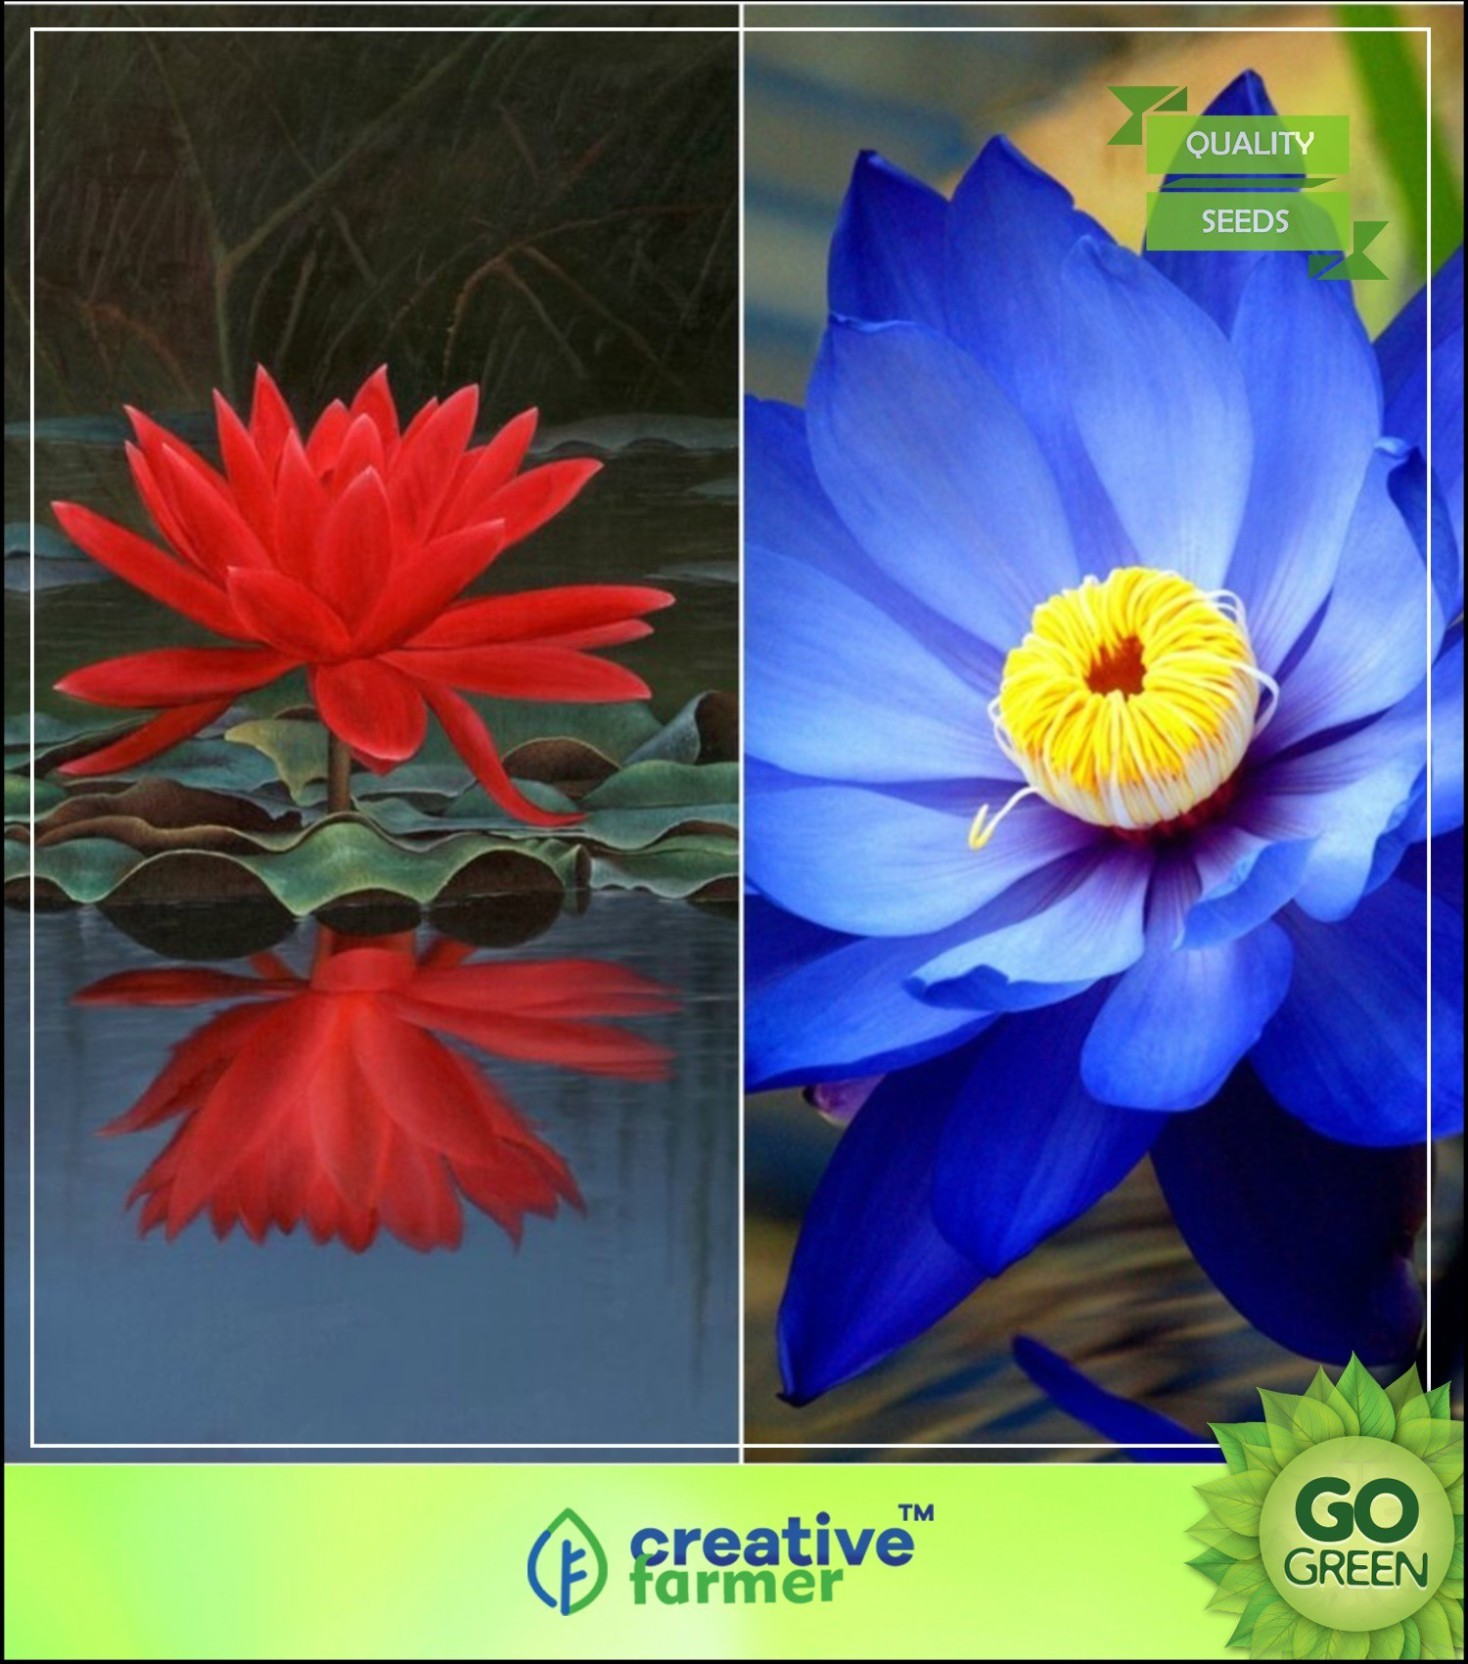 Creative farmer lotus flower seeds red blue colors seeds for on offer izmirmasajfo